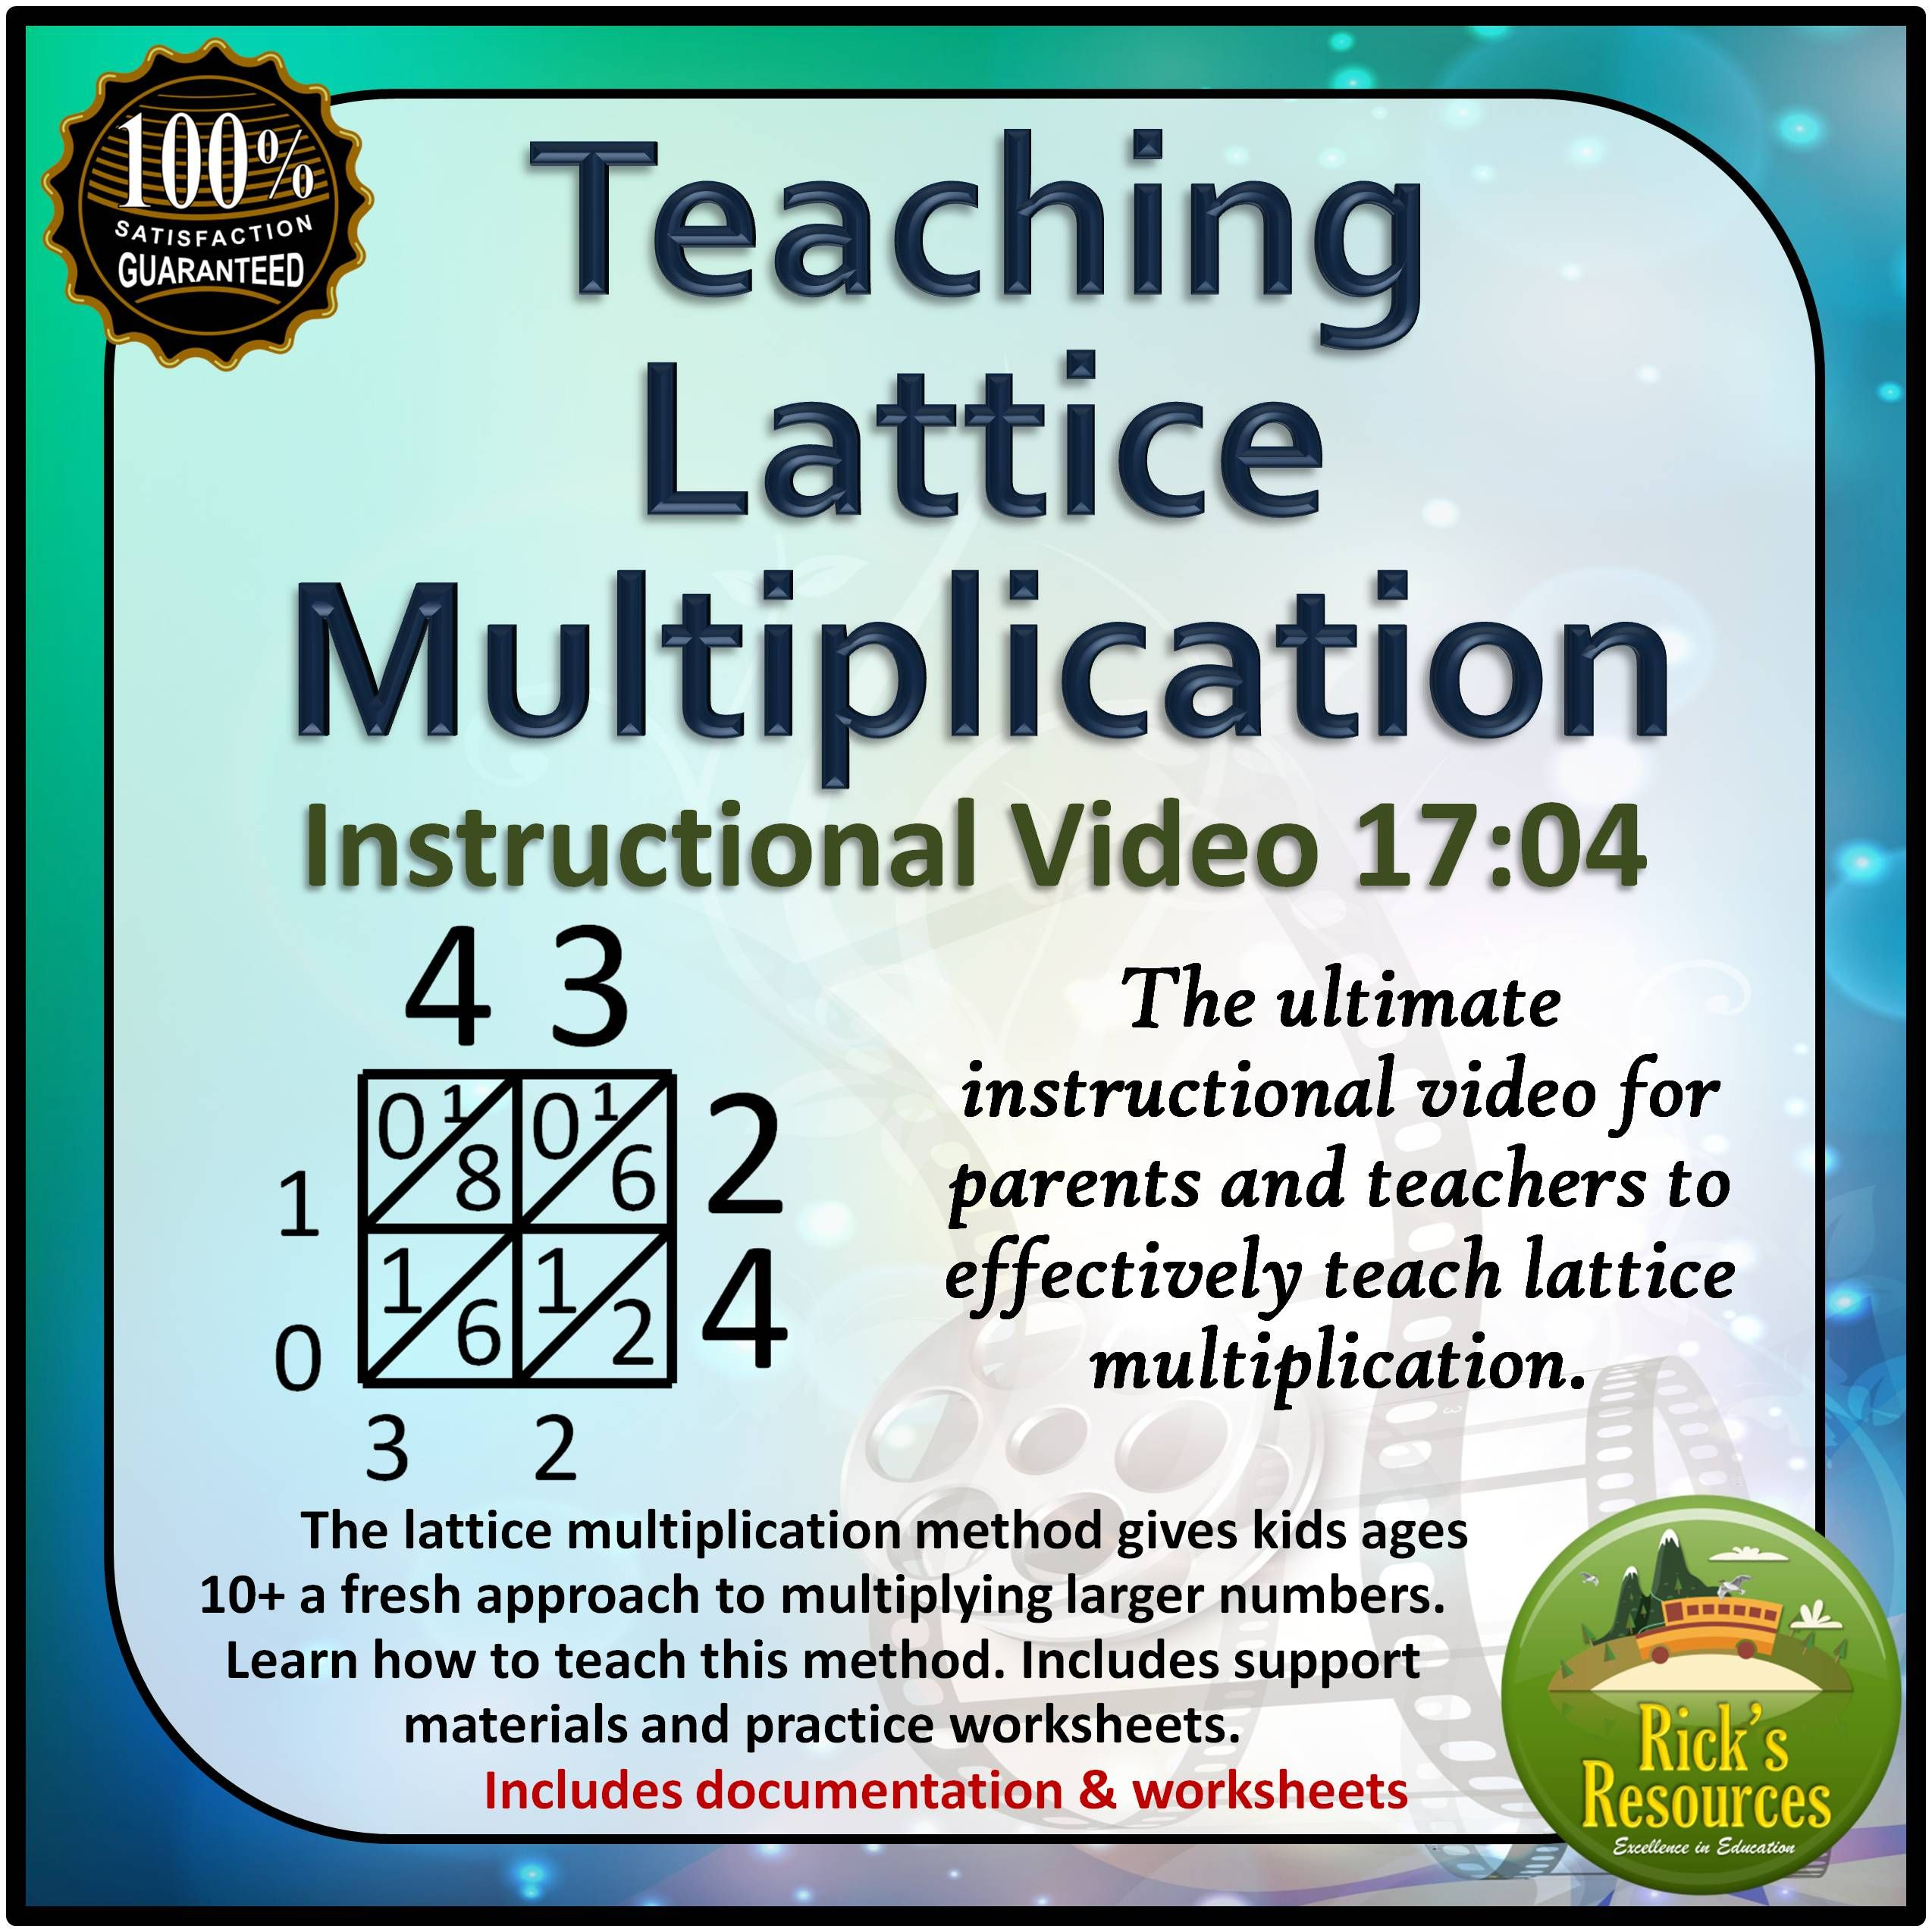 Lattice Multiplication Instructional Video for Teachers and Parents ...